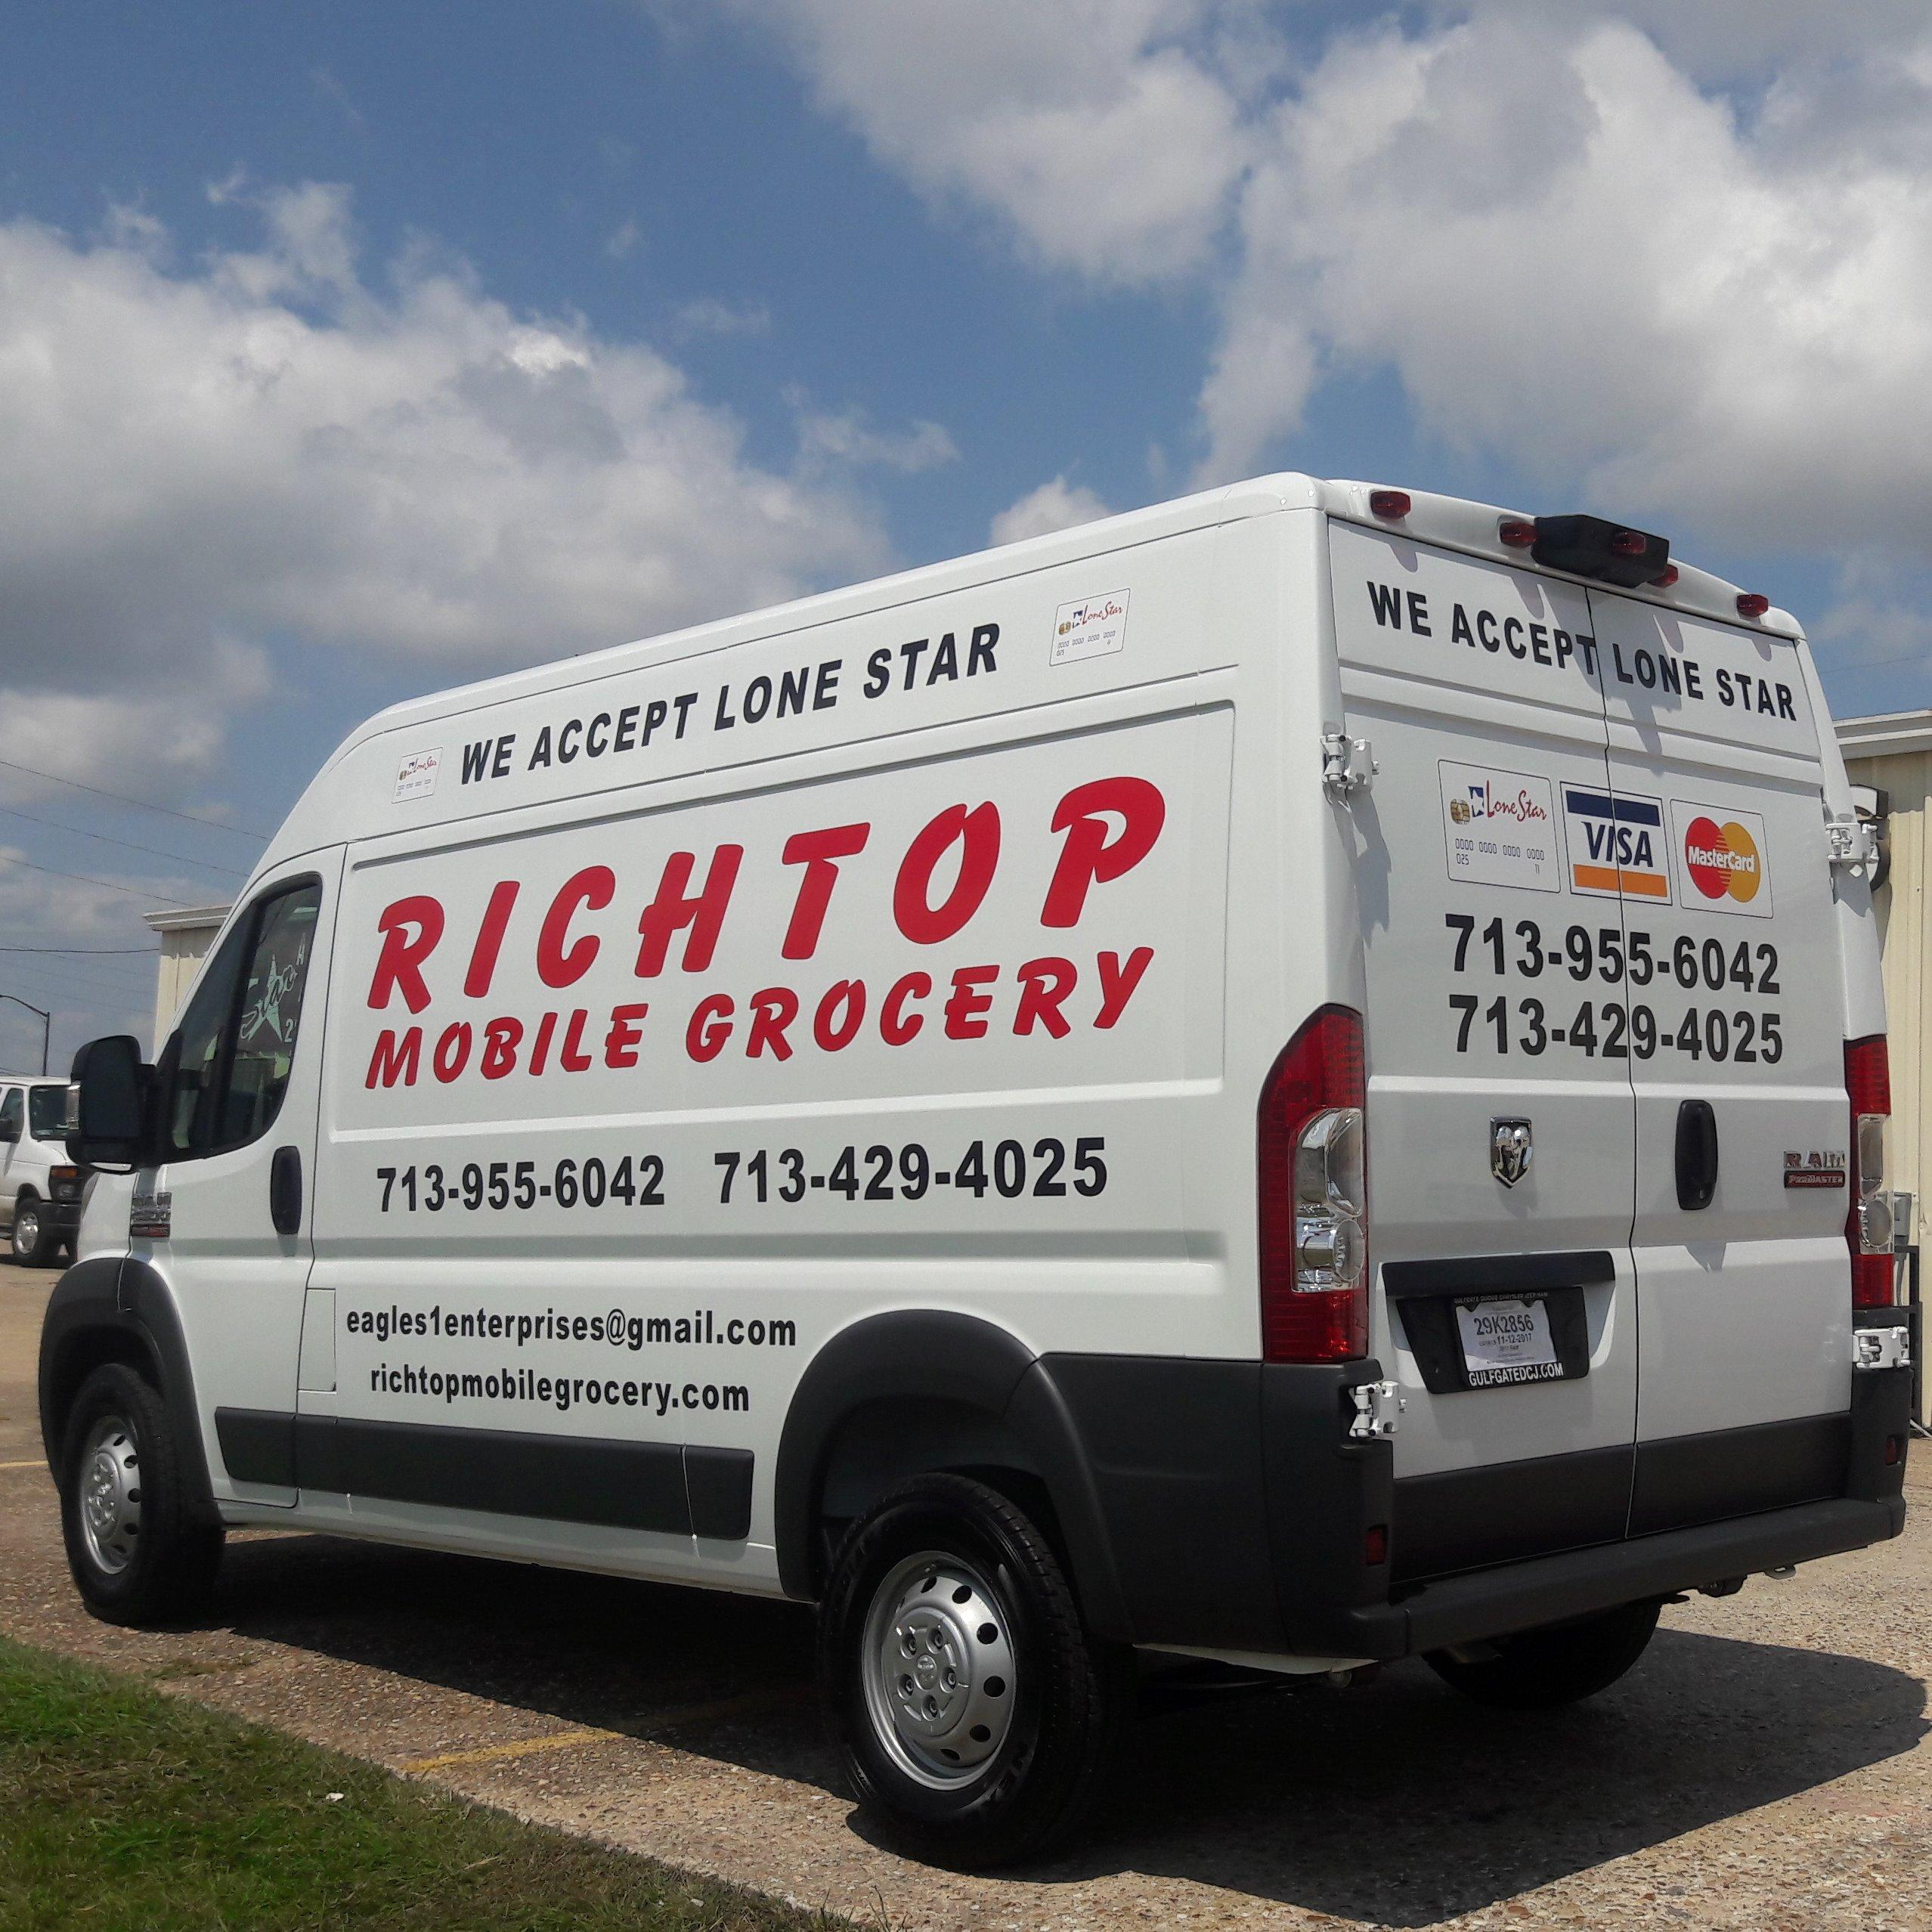 RICHTOP Mobile Grocery